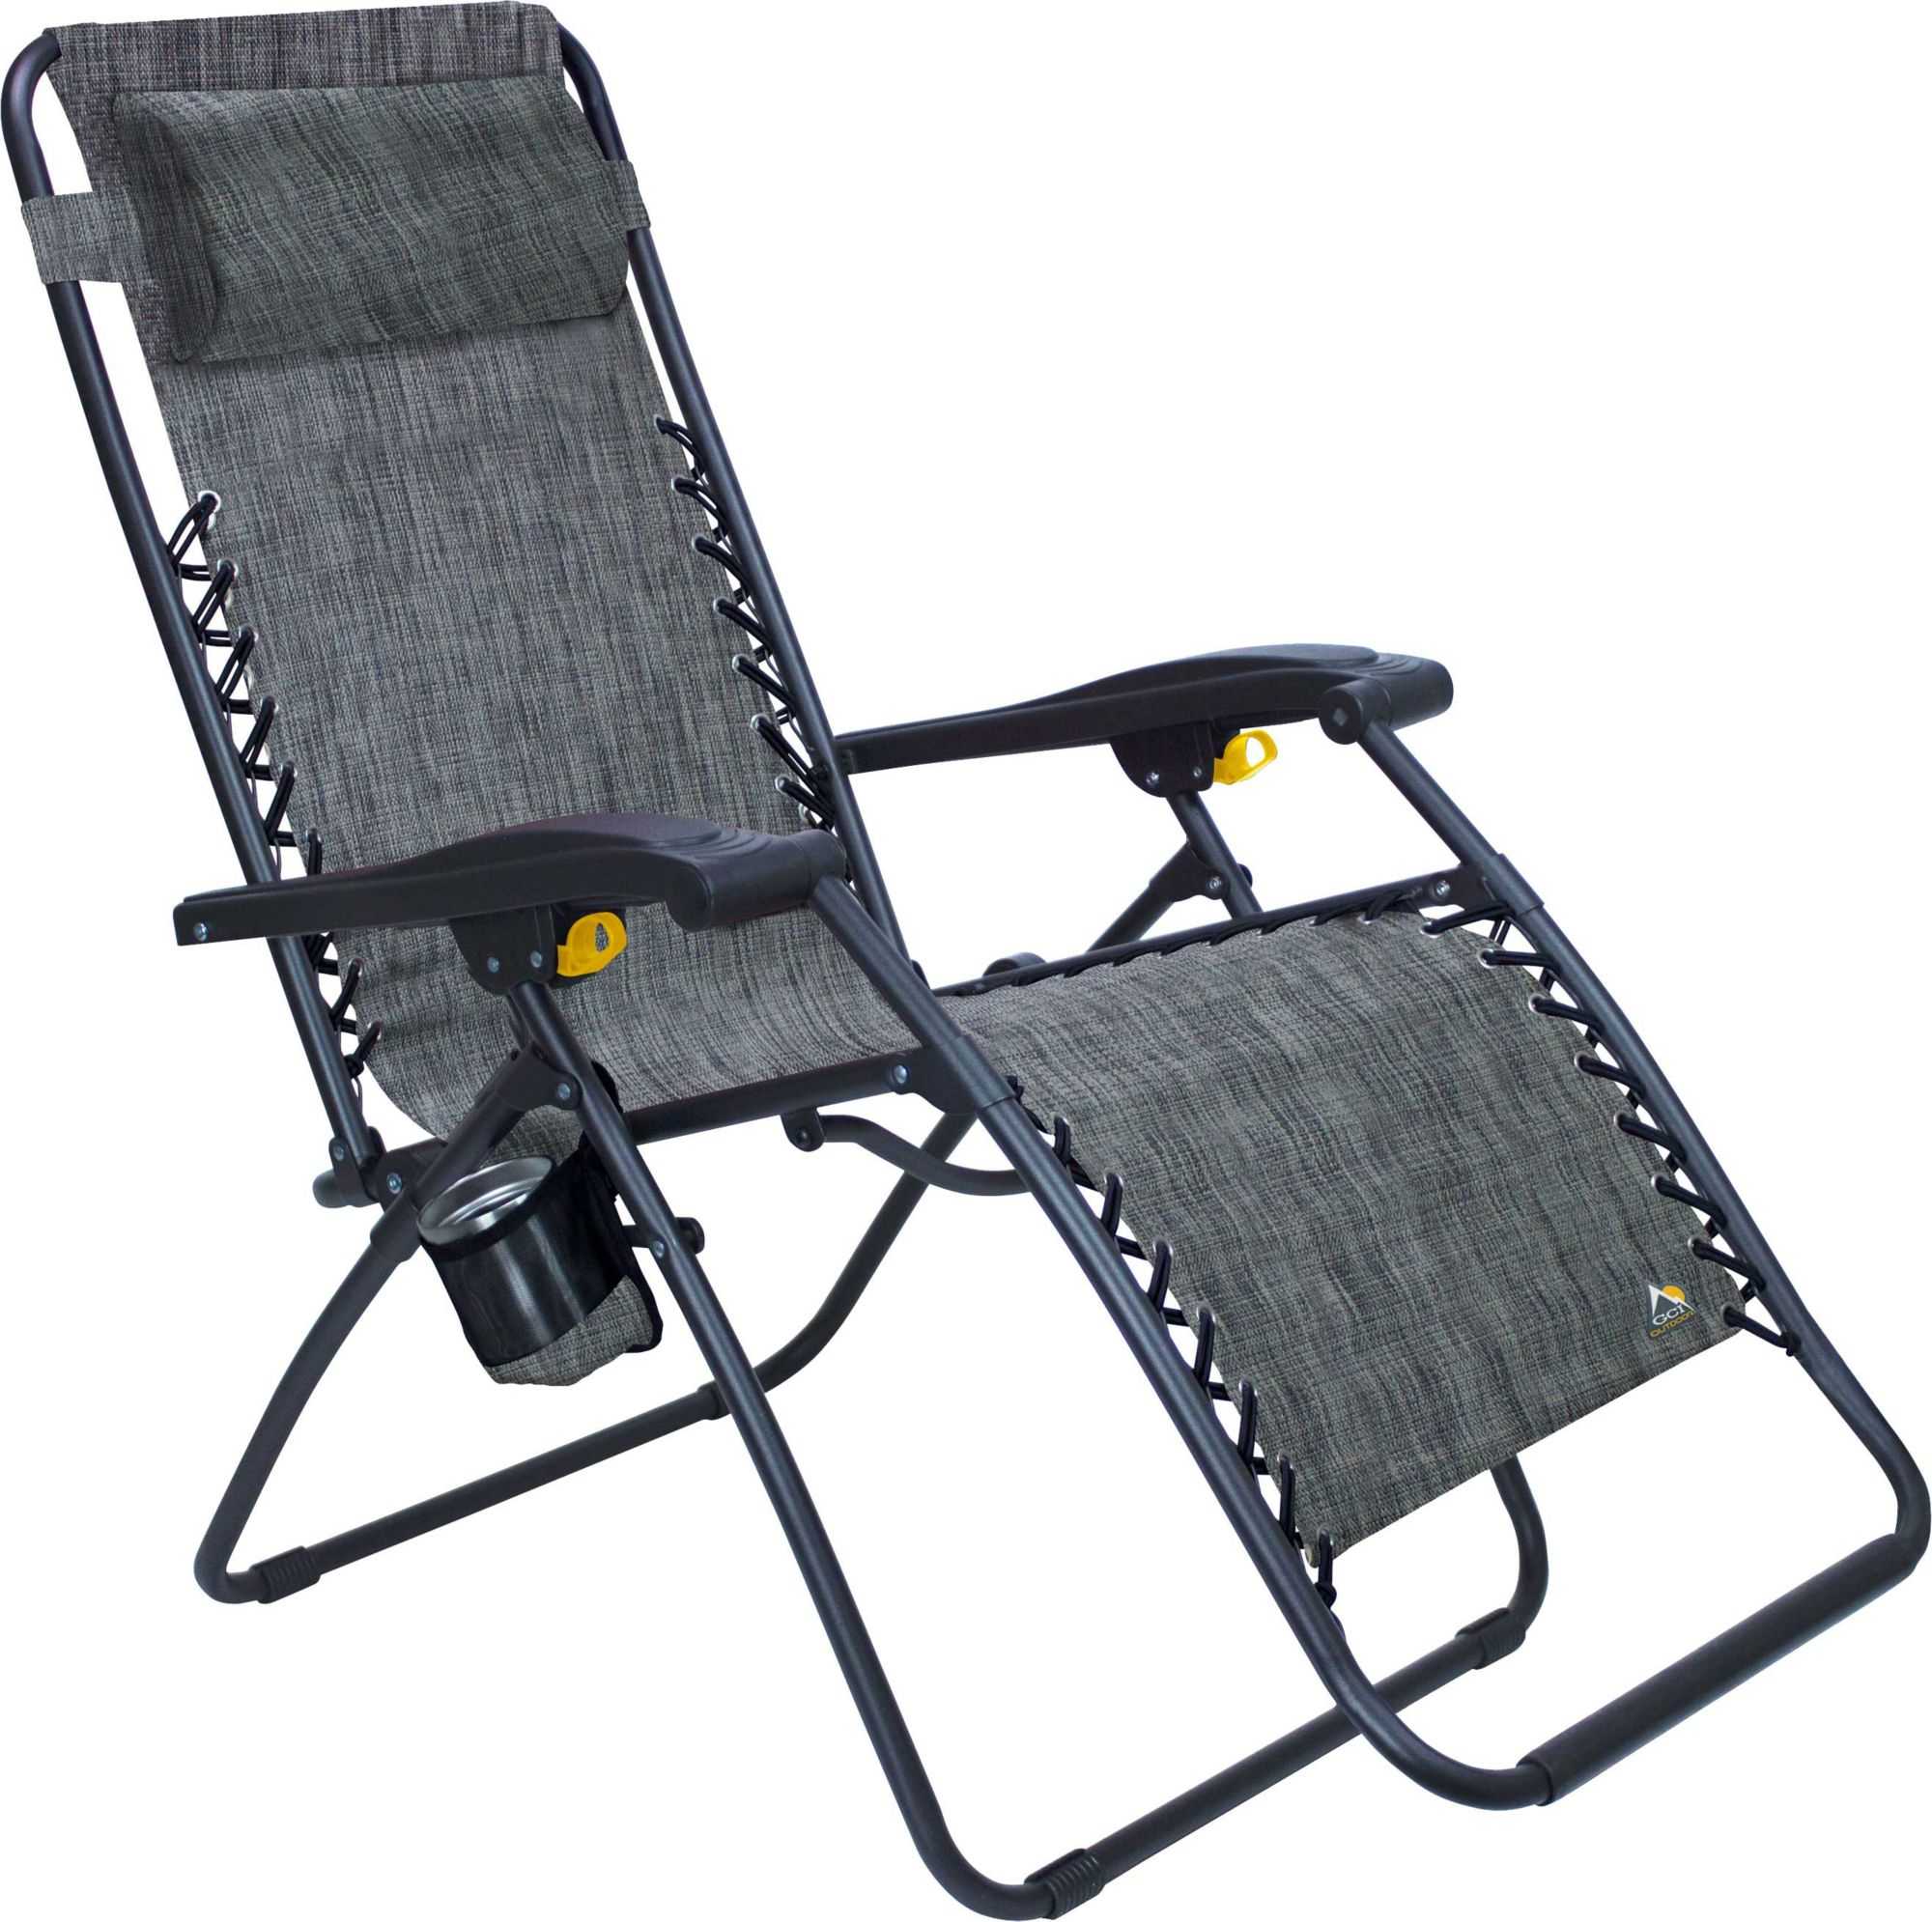 GCI Outdoor Zero Gravity Chair. noImageFound. 1 Chair | DICK\u0027S Sporting Goods